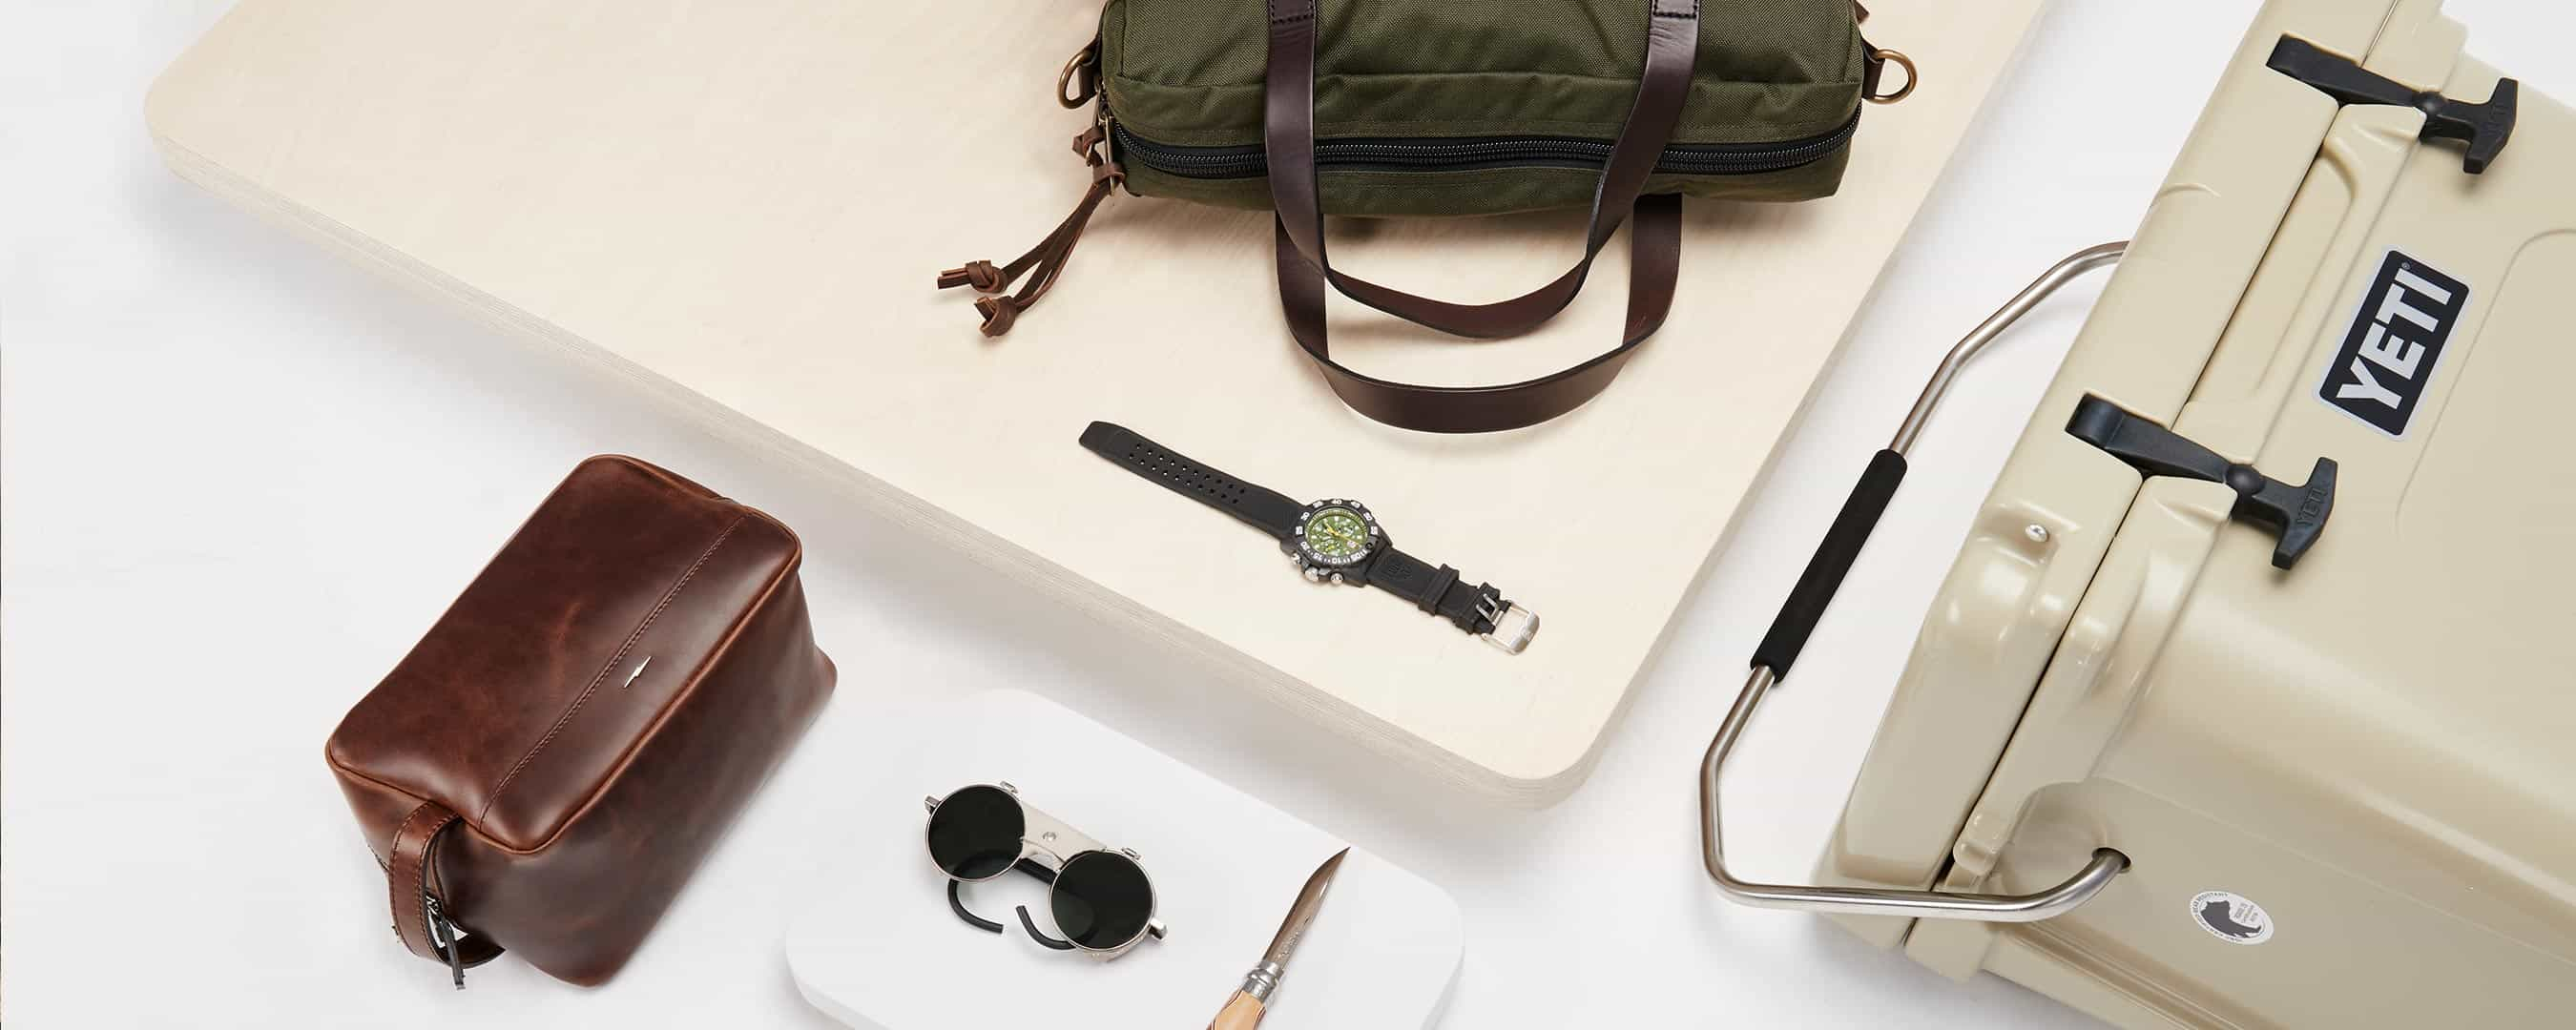 Arc'teryx, Barbour, Brixton, Florsheim, Frye, Garmin, Goal Zero, GoPro, Leatherman, Nixon, Opinel, Prestel, Sandqvist, Saucony, Scotch & Soda, Smith Optics, Suunto, The North Face, Timberland. Father's Day Gift Guide